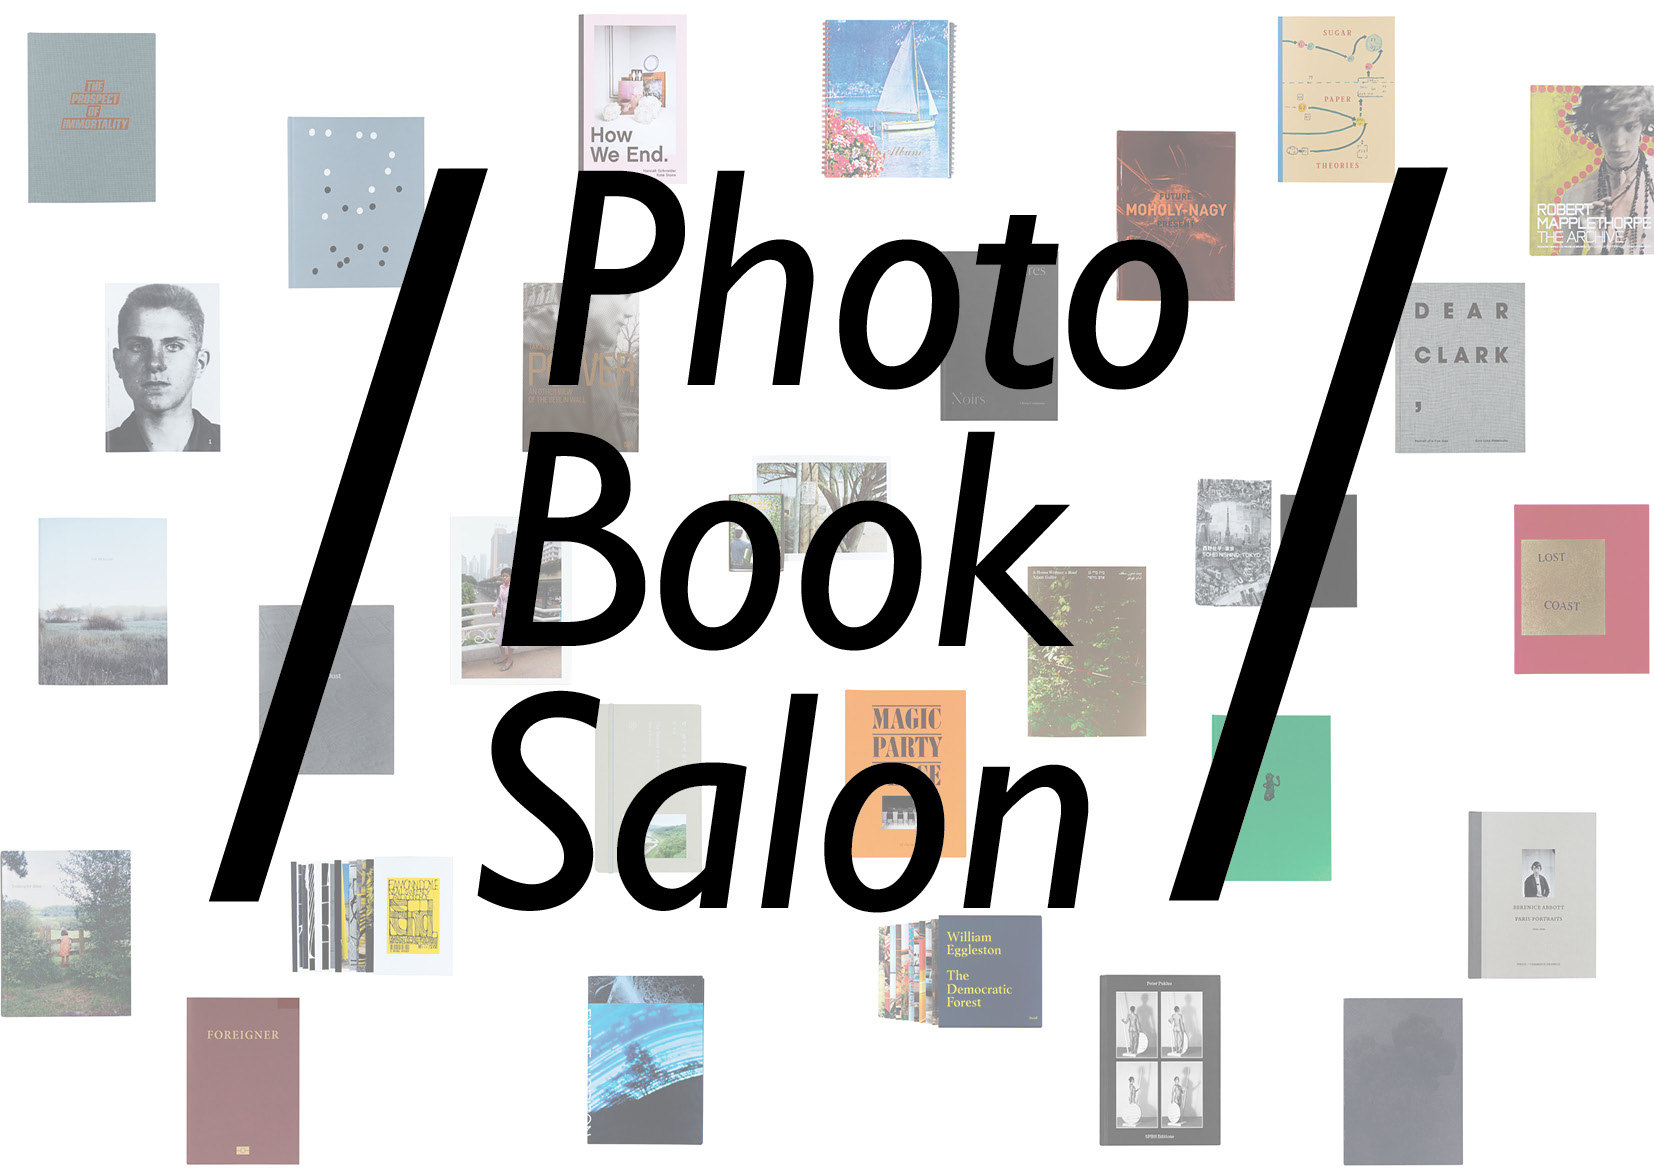 Photo Book Salon Düsseldorf